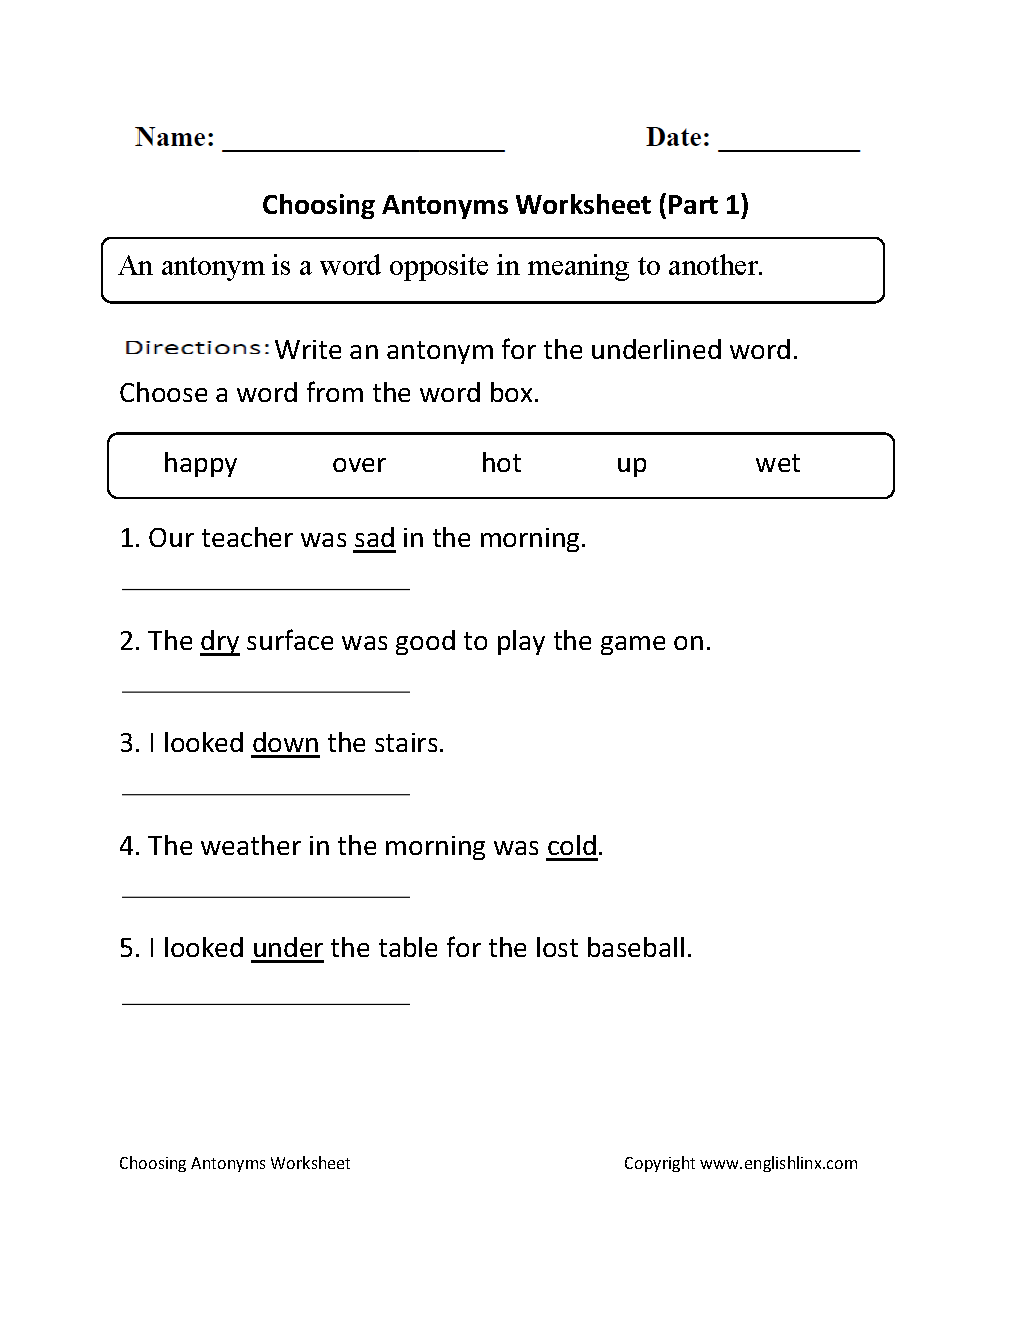 Worksheet Worksheets On Opposites For Grade 1 englishlinx com antonyms worksheets choosing part 1